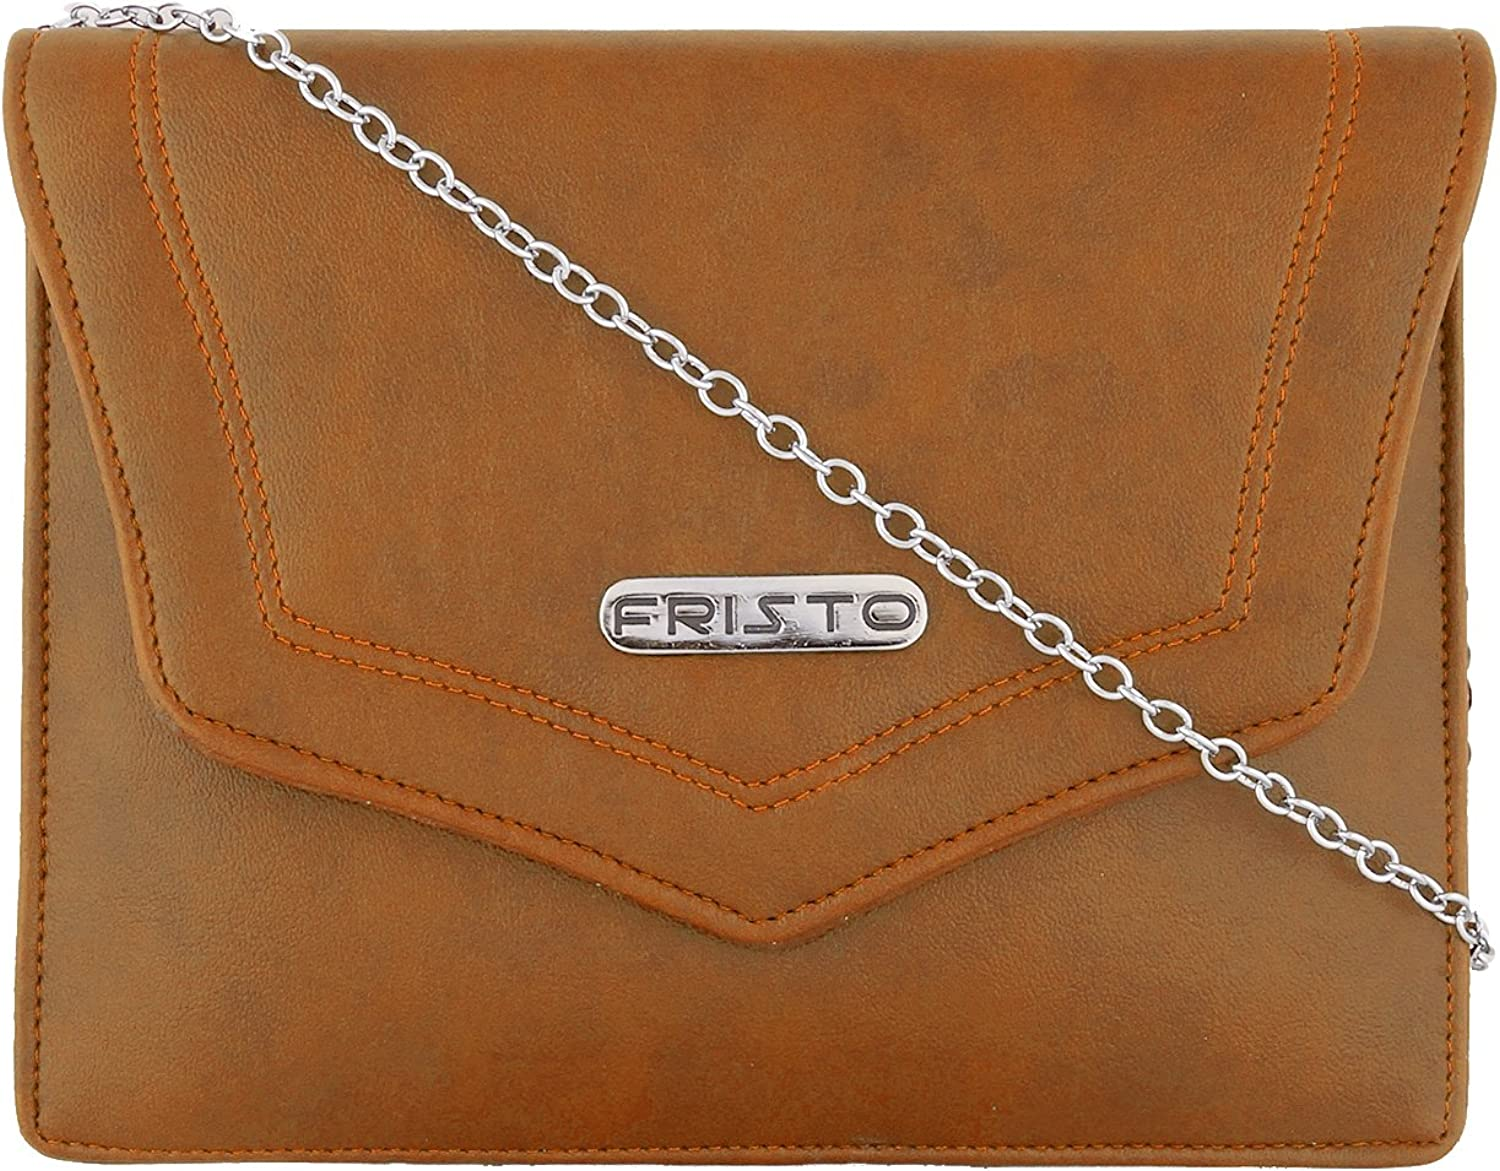 Fristo Women's Sling & handbag up to 90% off  from Rs 168 at Amazon